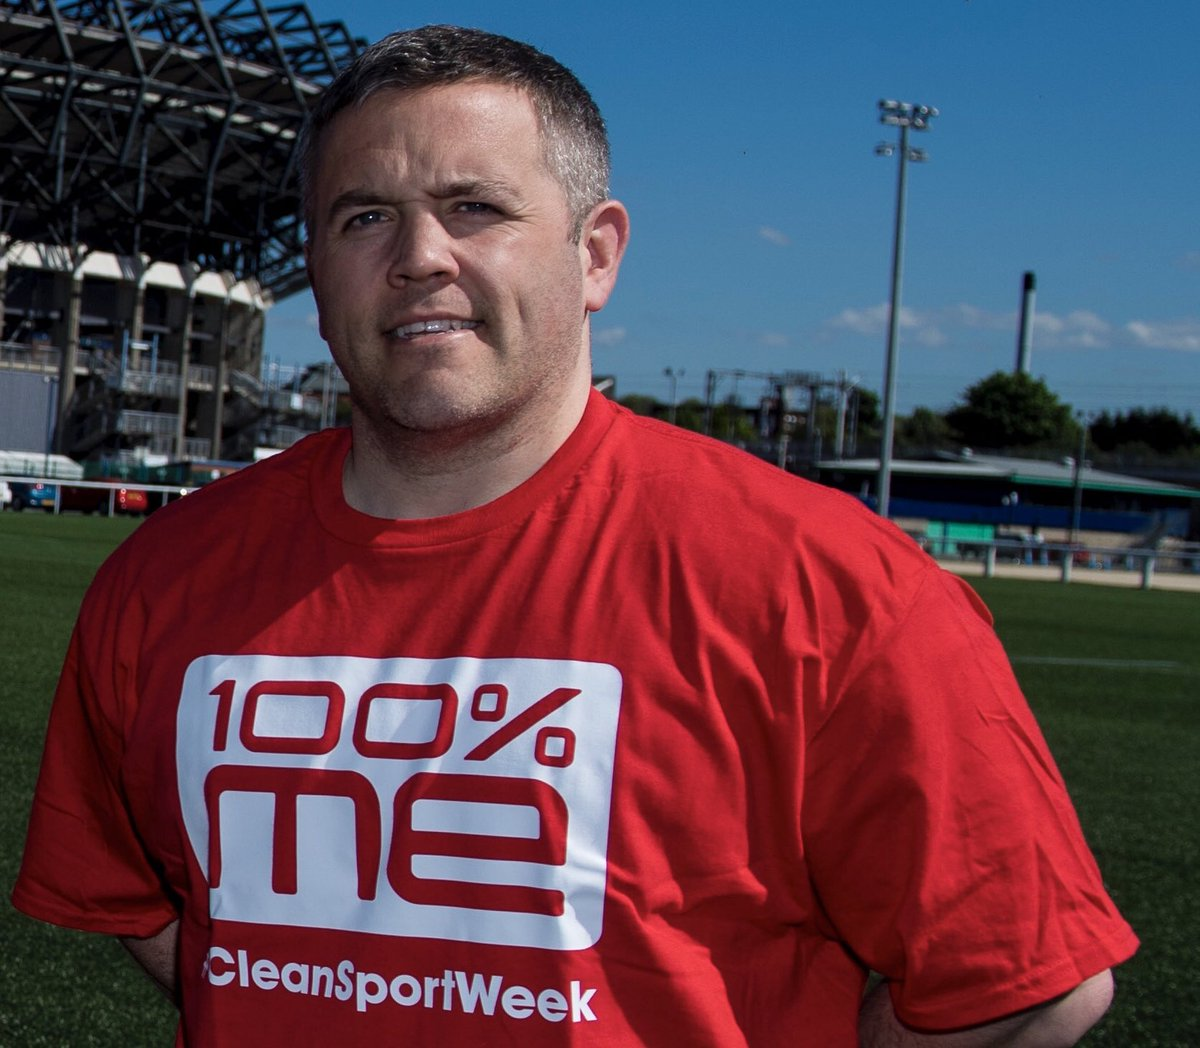 """💬 """"It's important our players understand the role they play in promoting clean sport. Through our education workshops we're able to give them information to allow them to make well-informed choices."""" Richard Wood, Scottish Rugby's Medical Services Manager. #CleanSportWeek"""